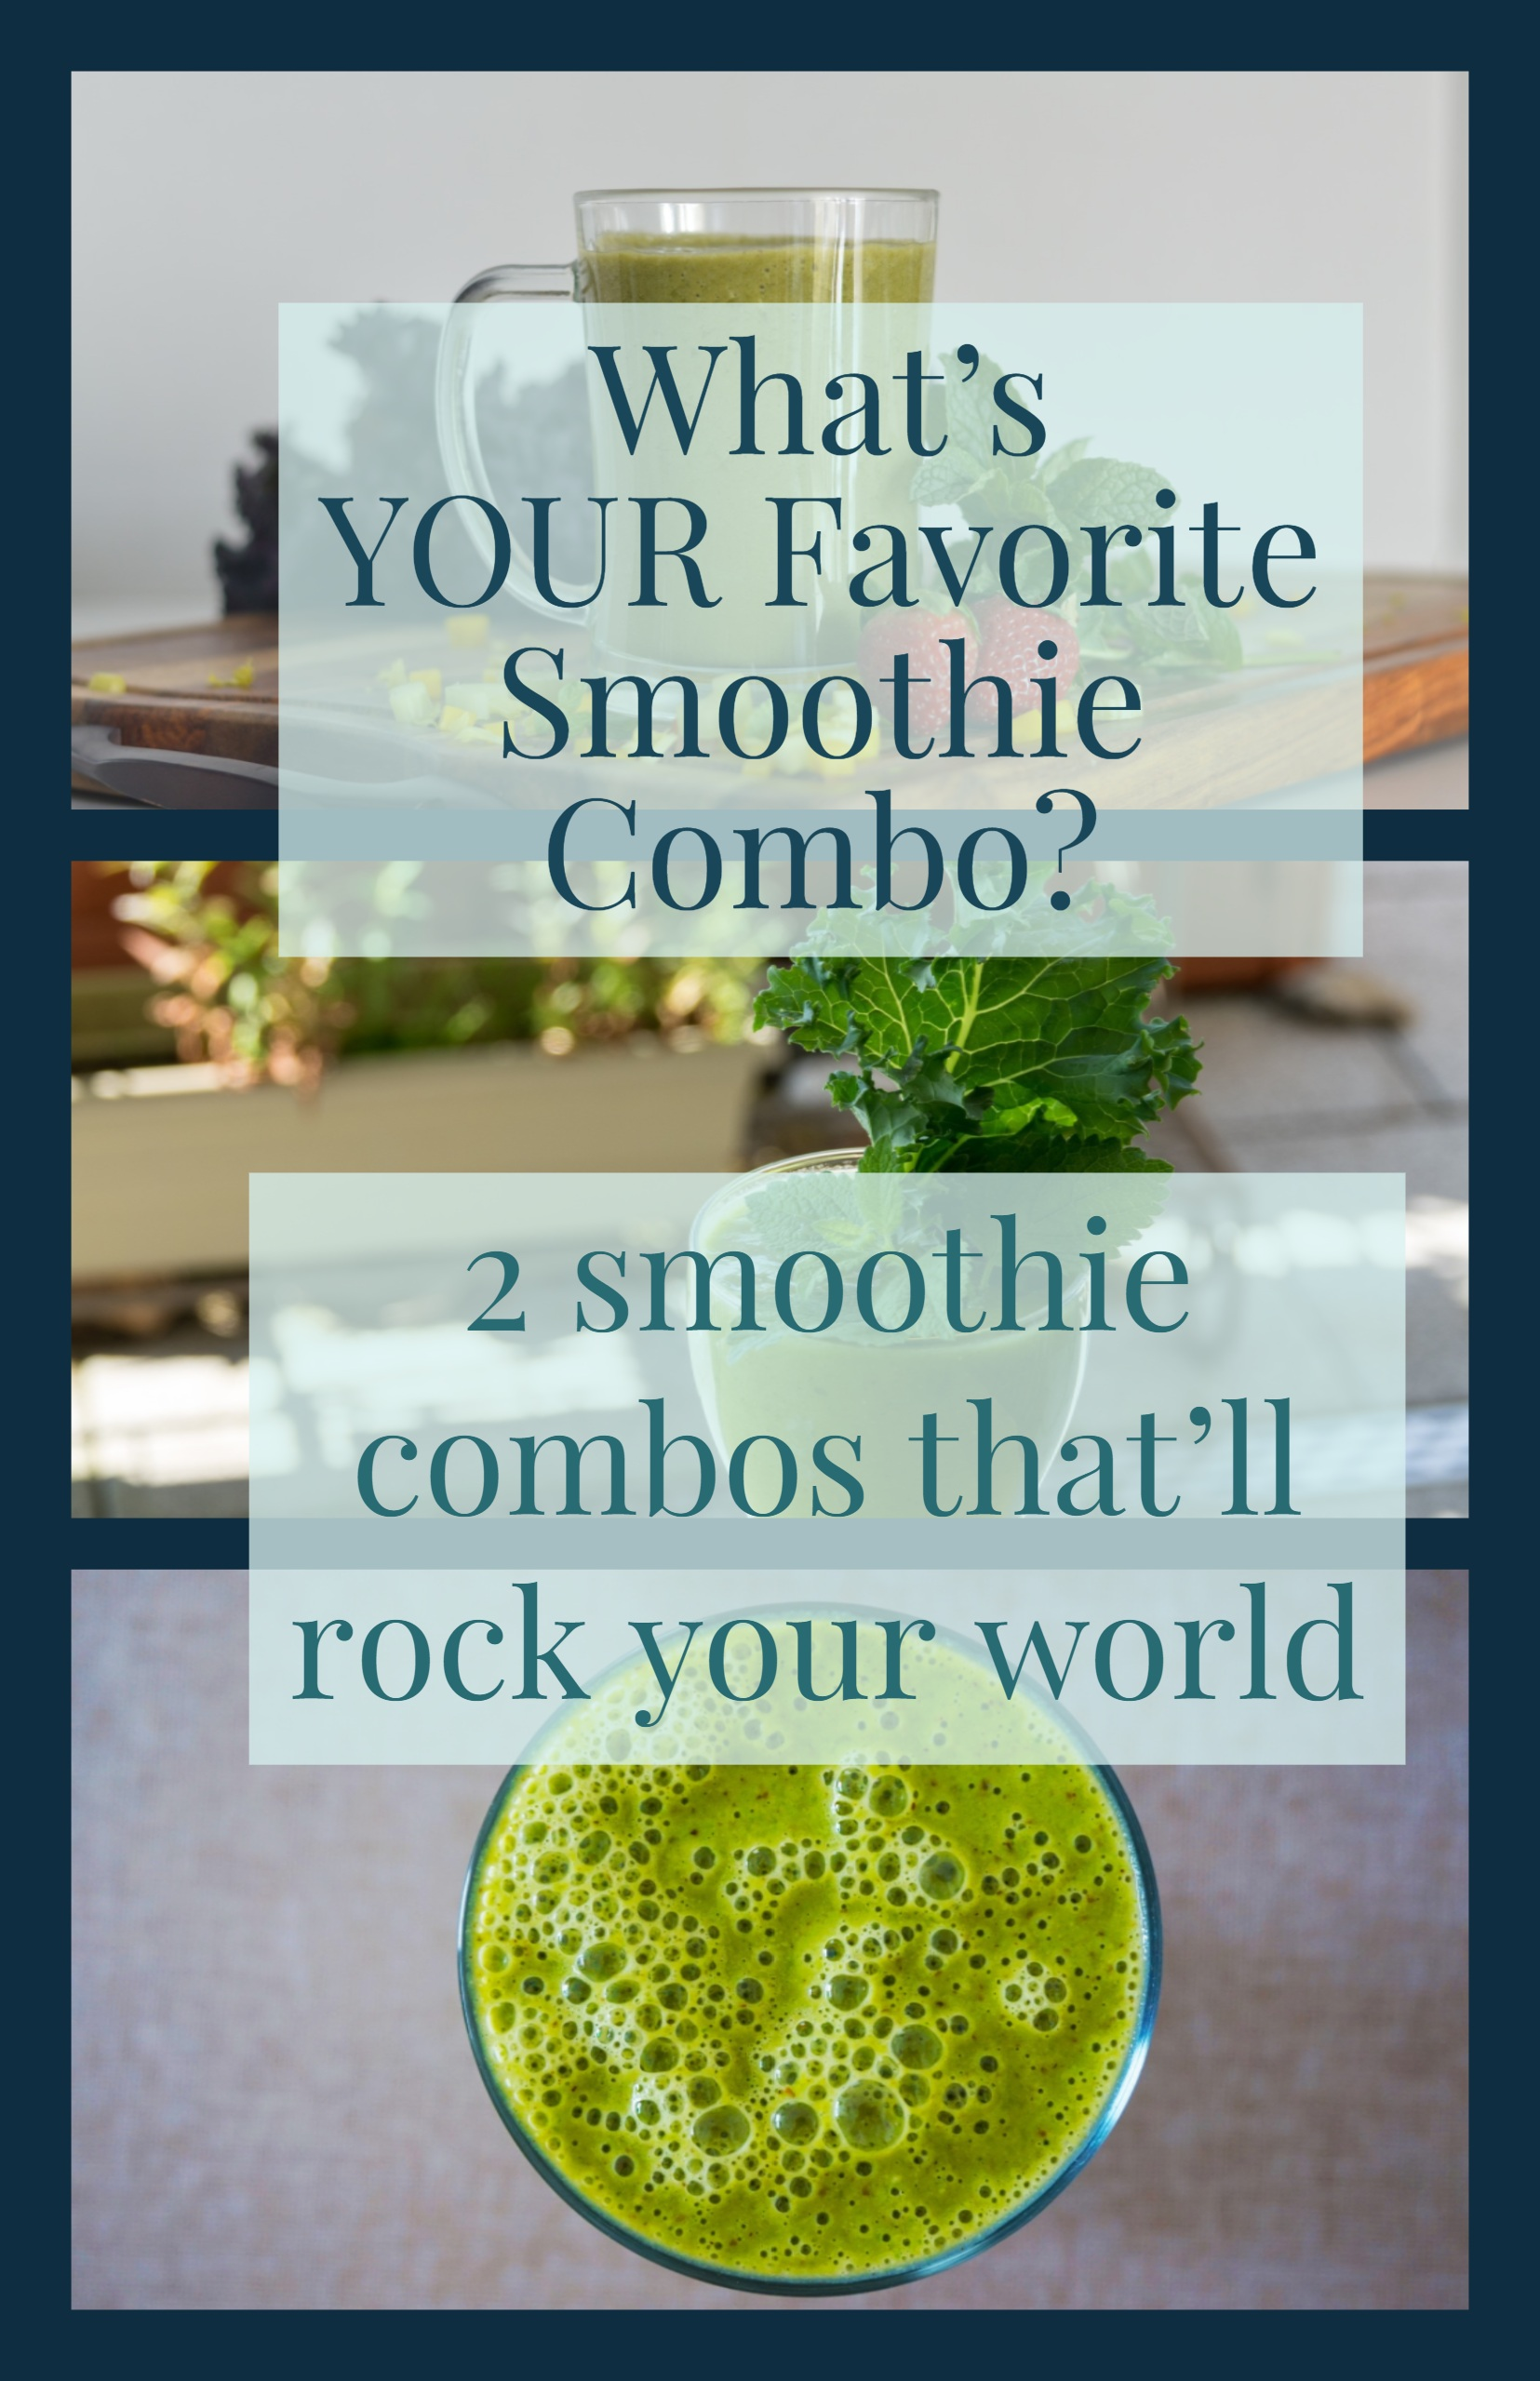 What's your favorite smoothie combination?